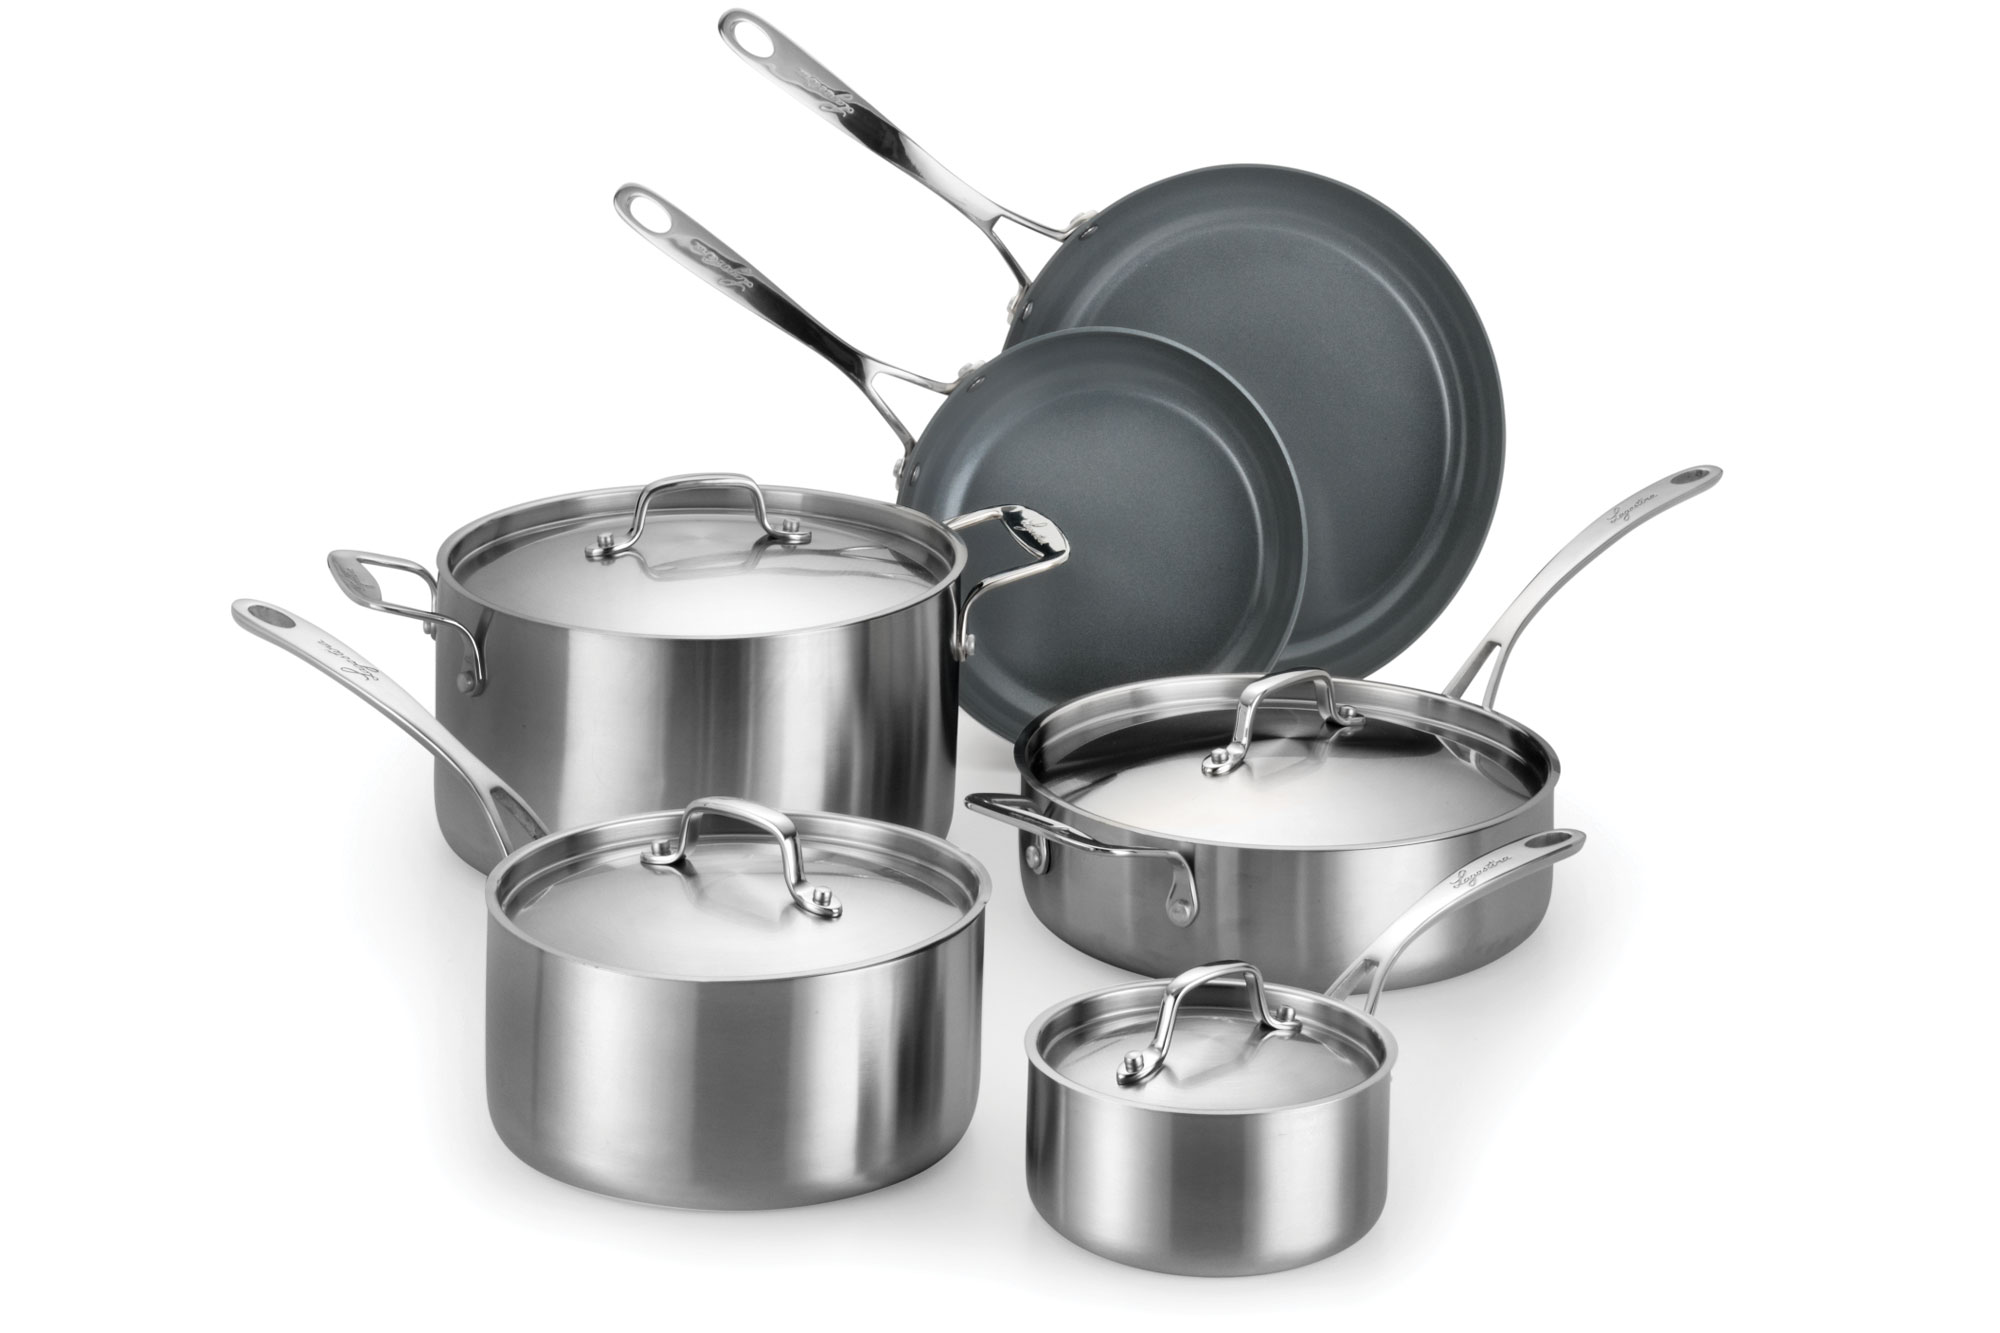 Lagostina Axia Tri Ply Ceramic Nonstick Stainless Steel